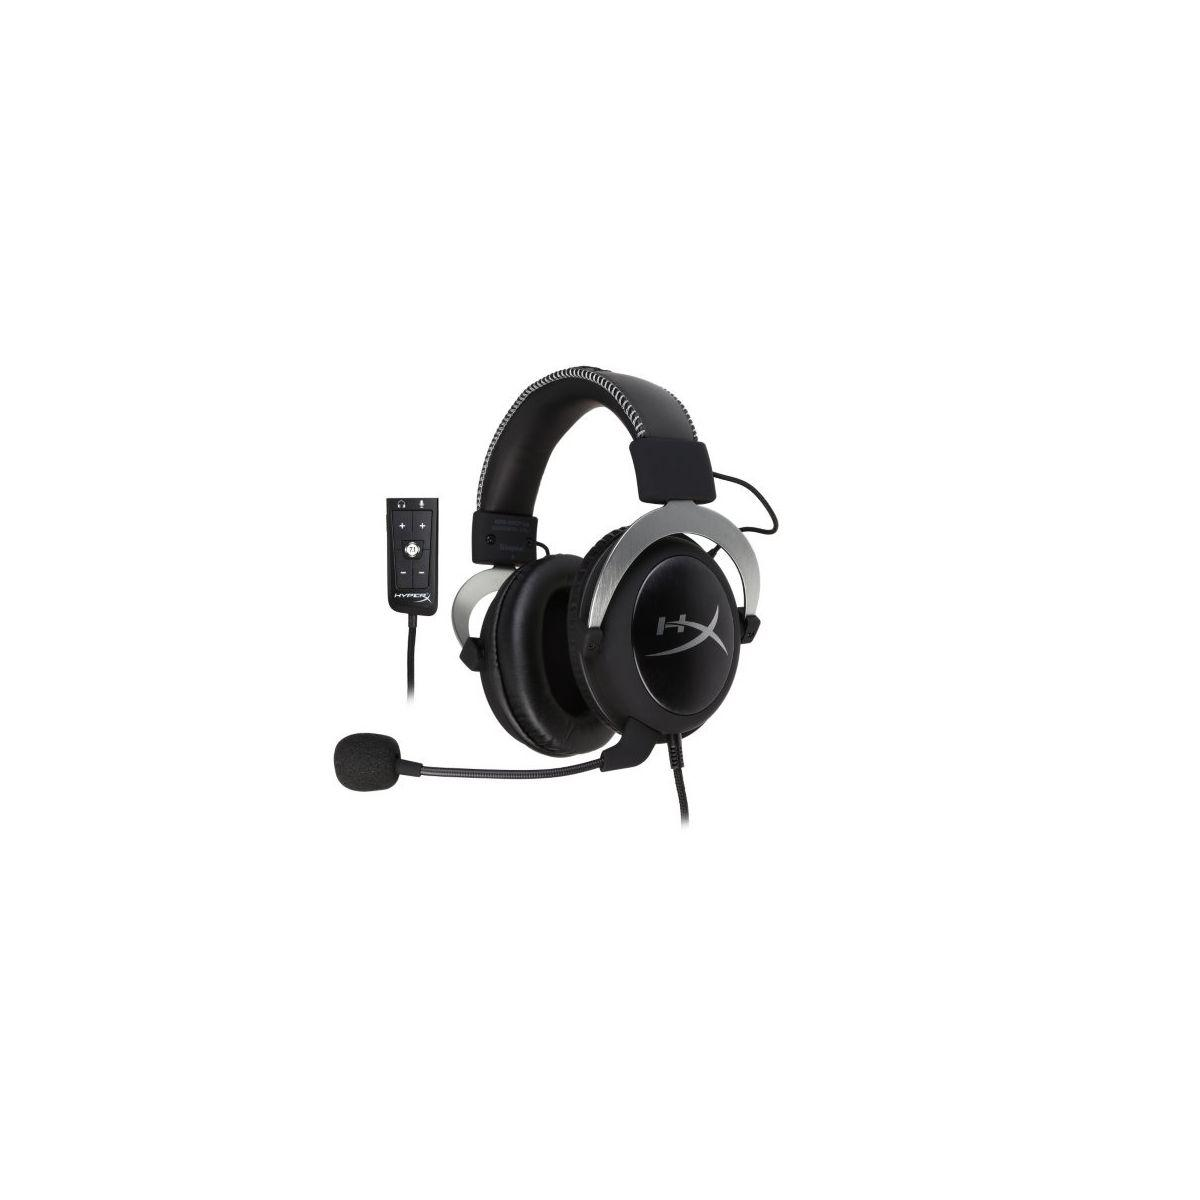 Casque micro gamer hyperx cloud ii argent - 5% de remise : code multi5 (photo)